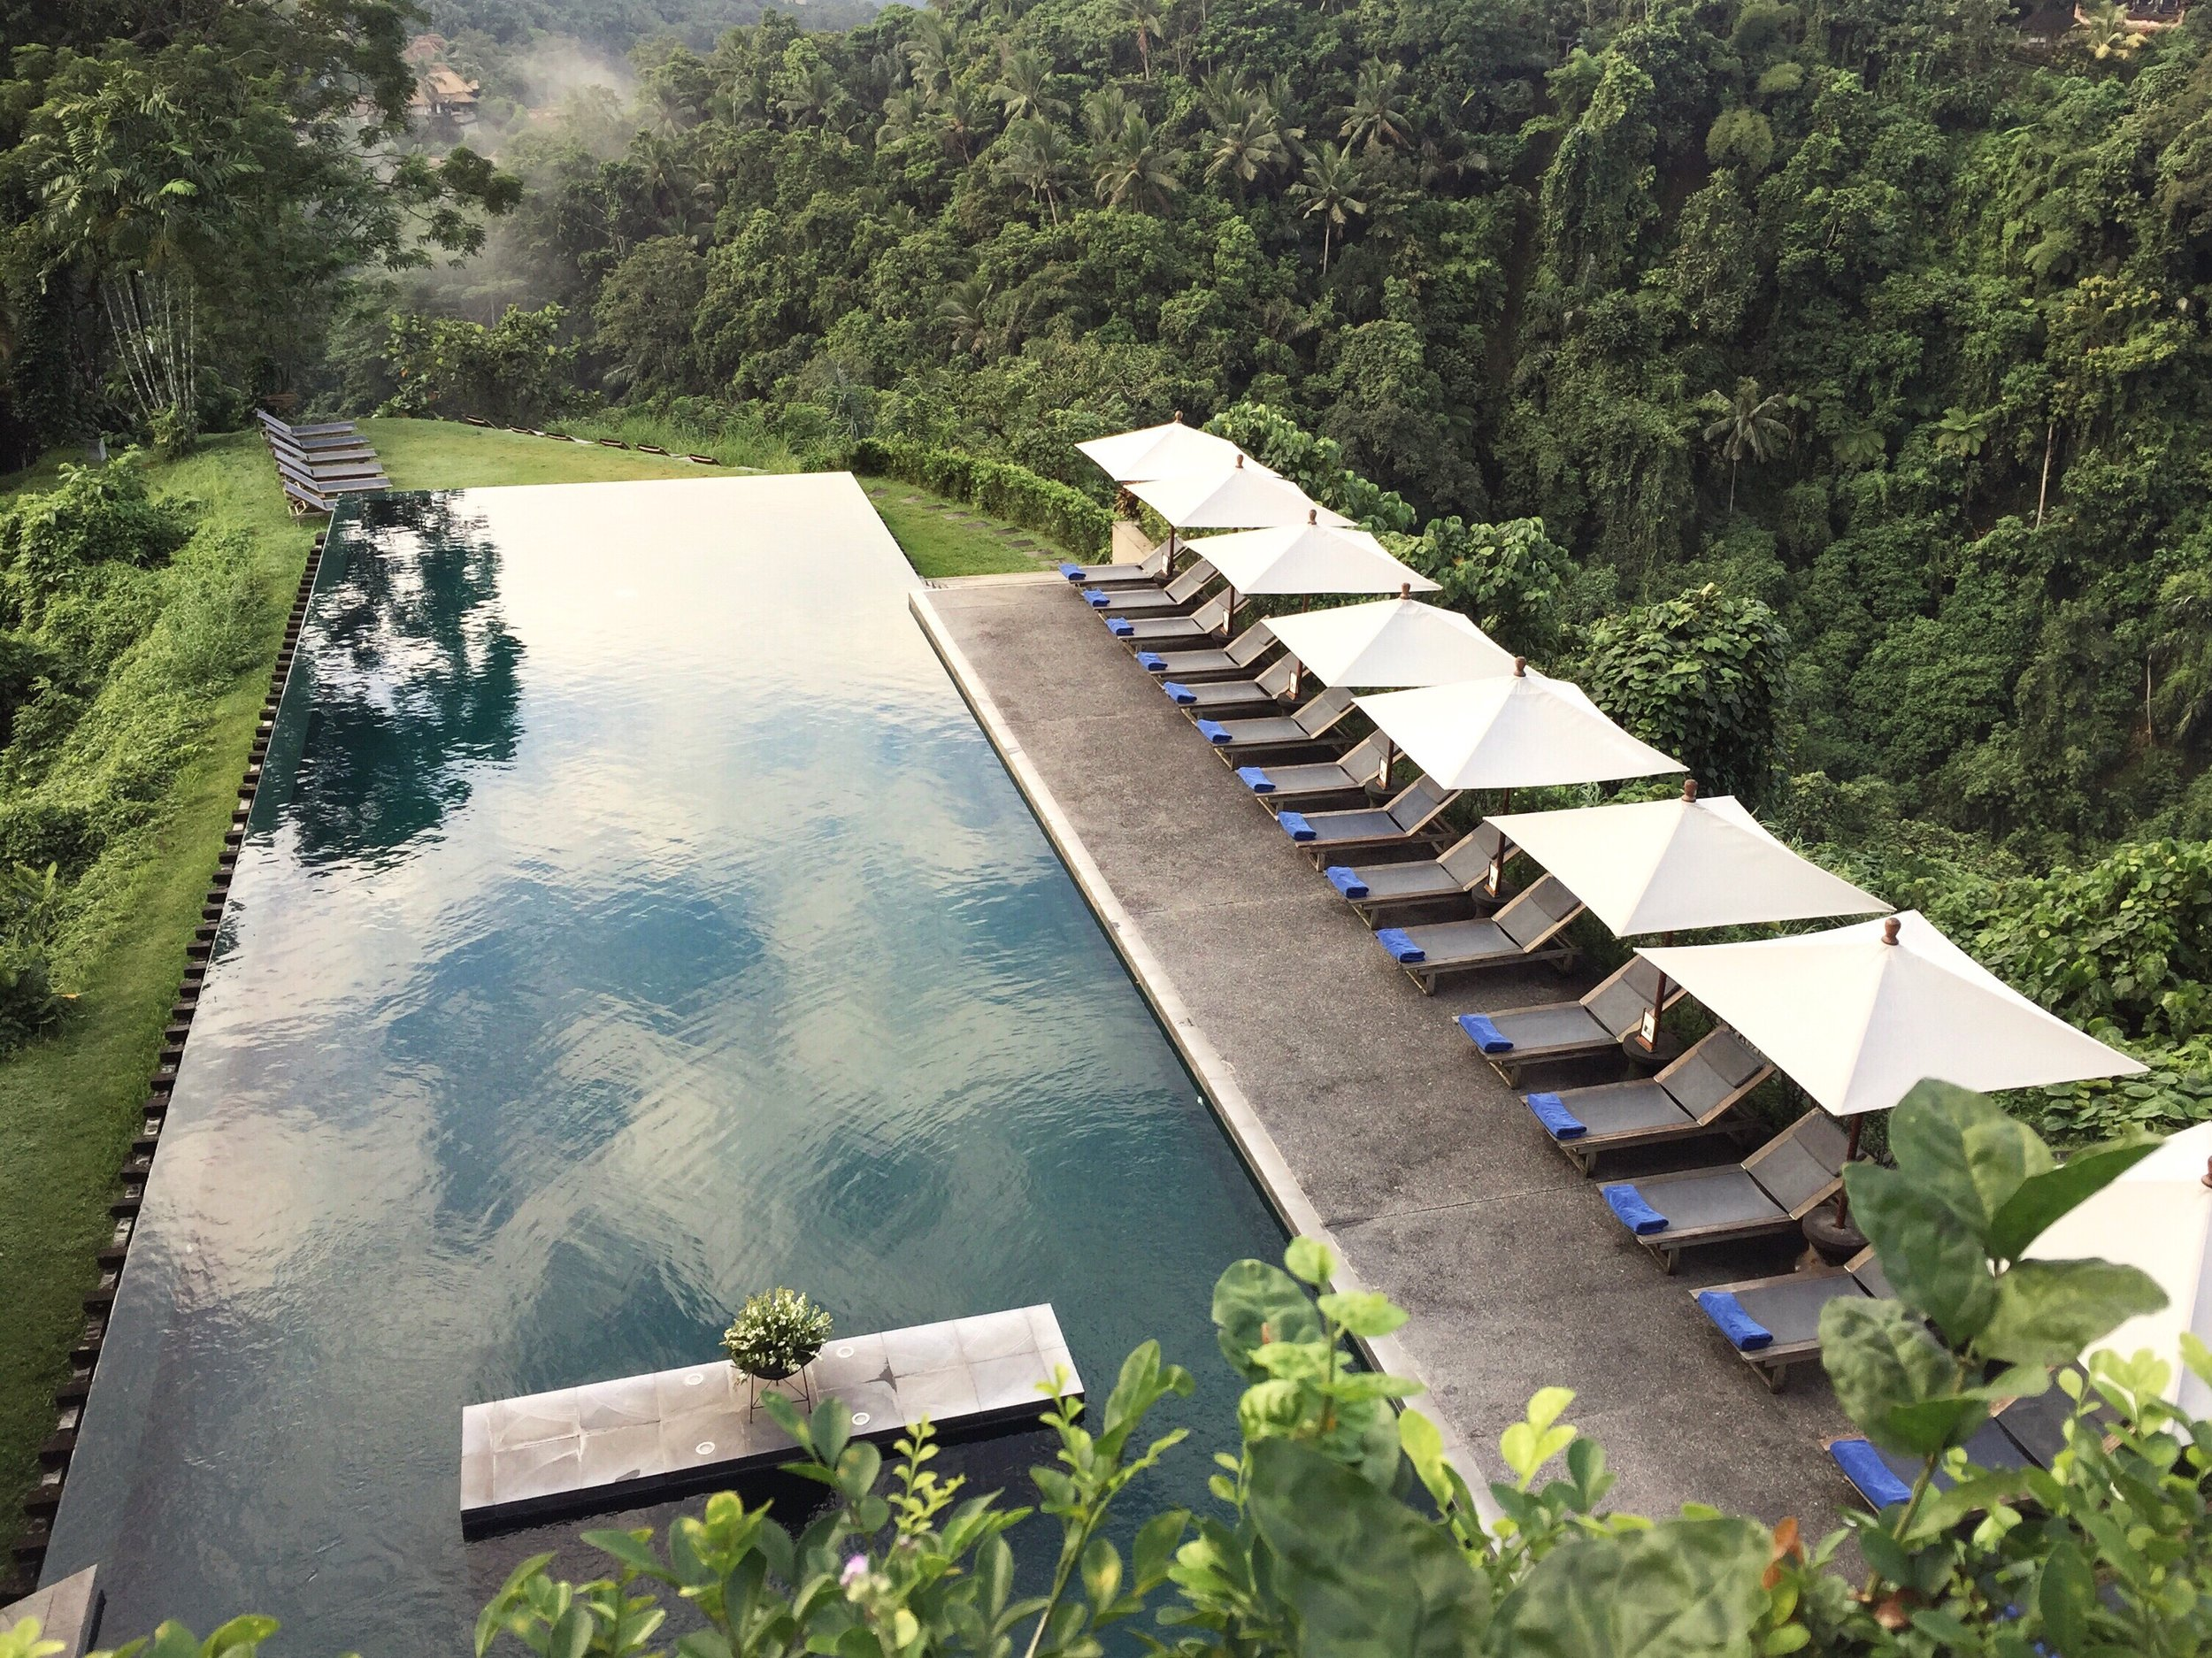 The pool at Alila | EAT.PRAY.MOVE Yoga | Bali, Indonesia